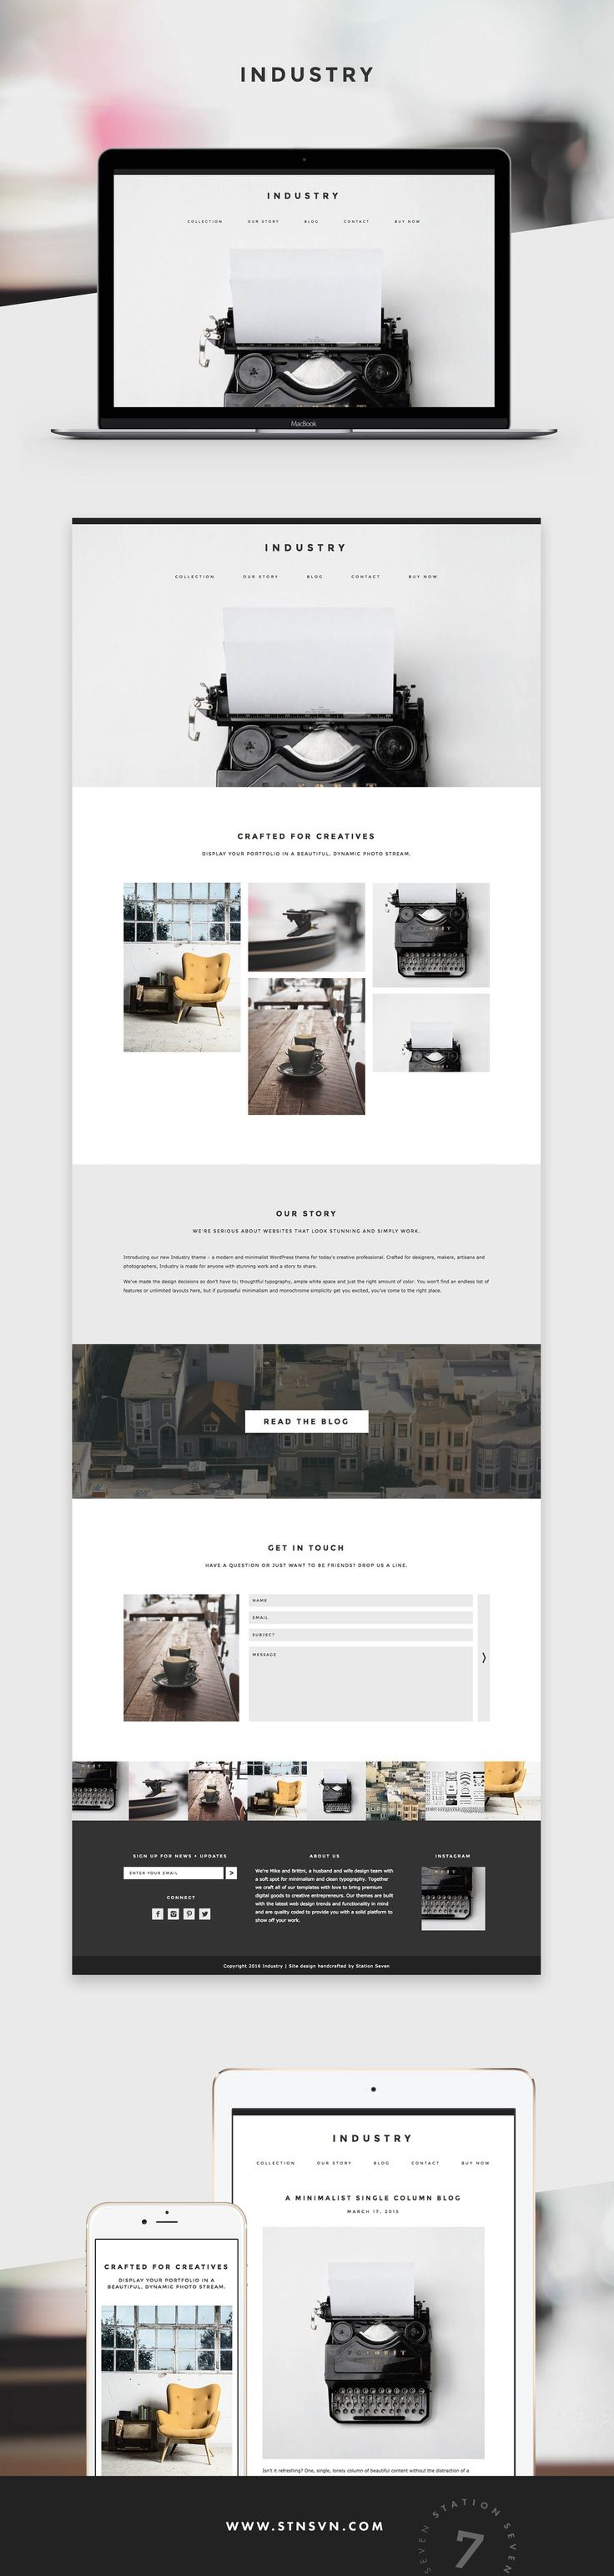 Industry WordPress Theme - Station Seven WordPress Themes